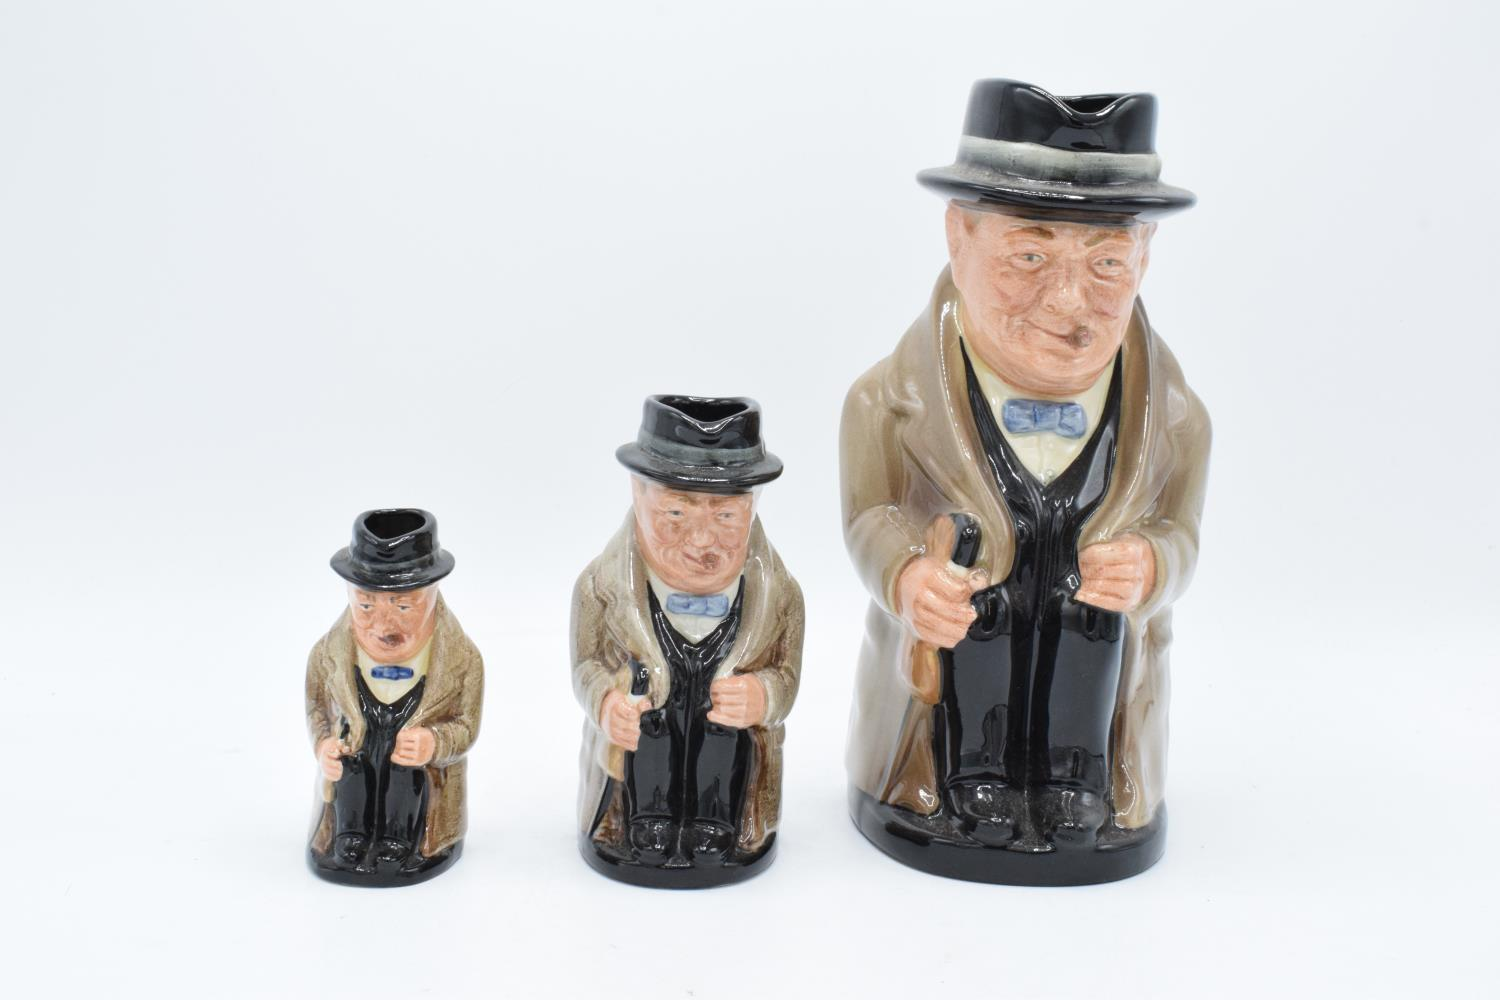 A graduated set of Royal Doulton Toby jugs of Sir Winston Churchill (3). In good condition with no